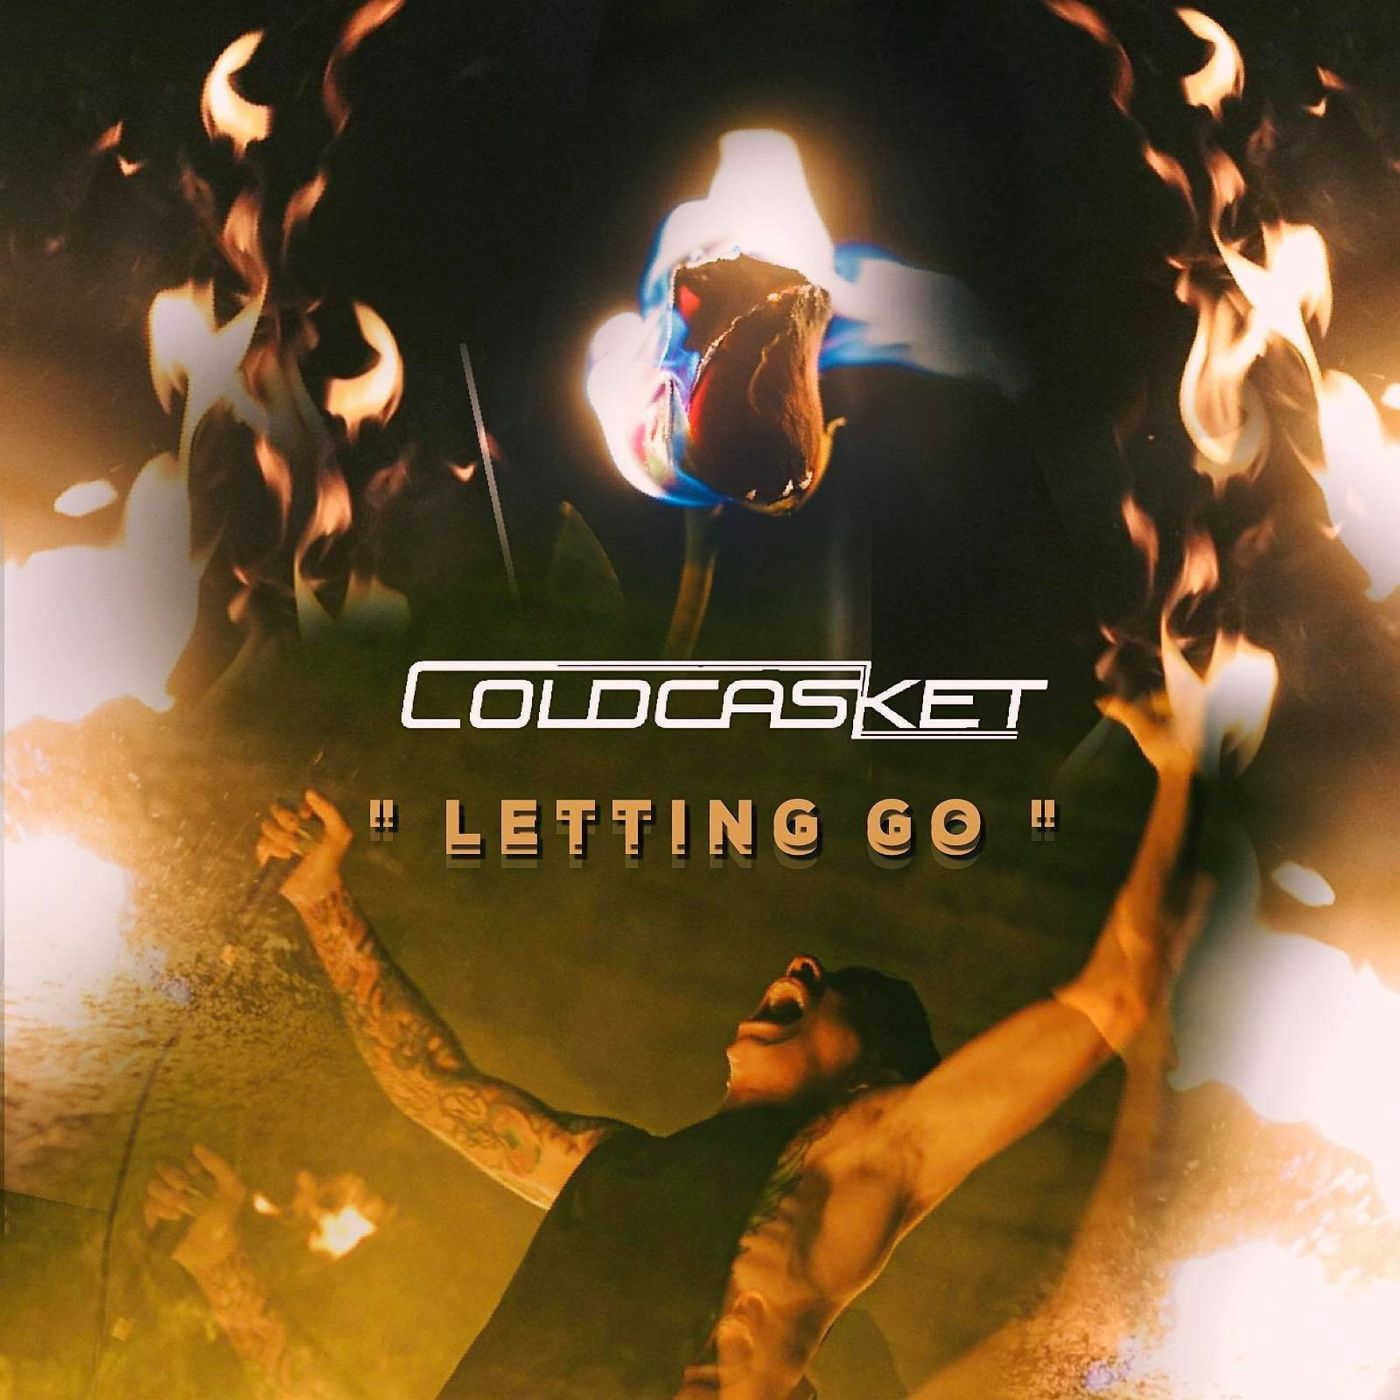 Coldcasket - Letting Go [single] (2020)